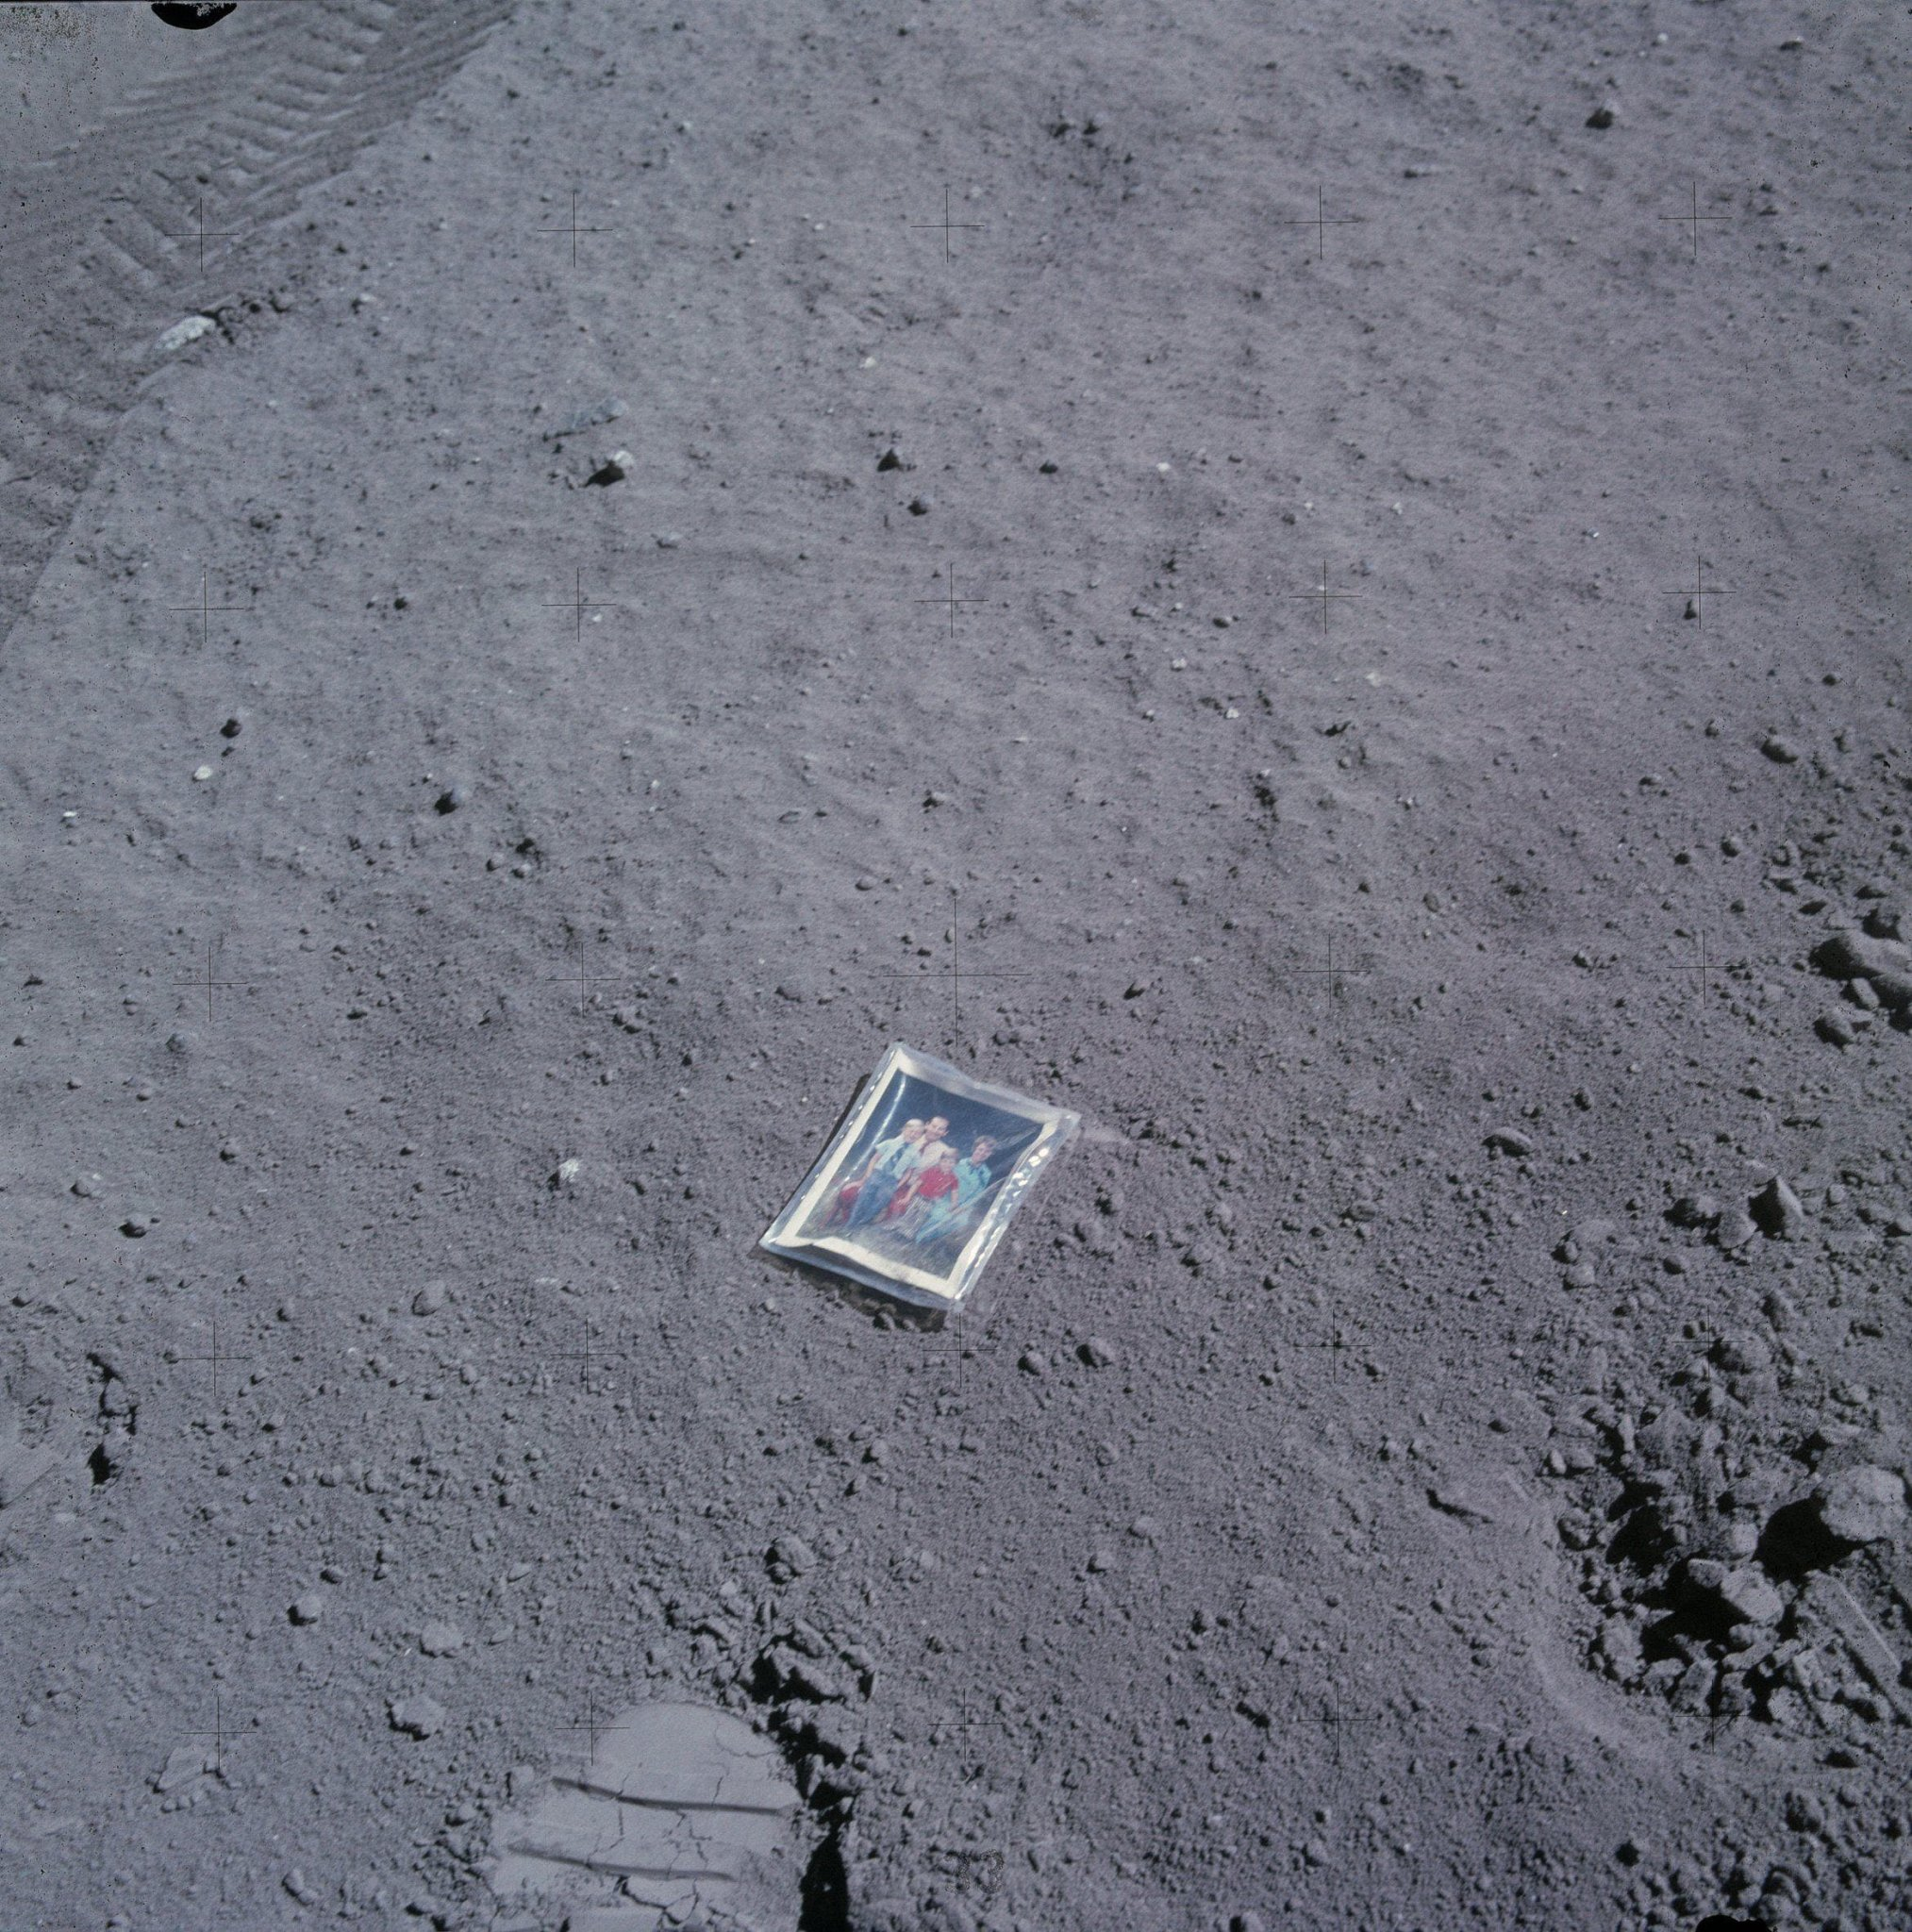 The Story of an Apollo 16 Astronaut Who Left a Family Photo on the Moon